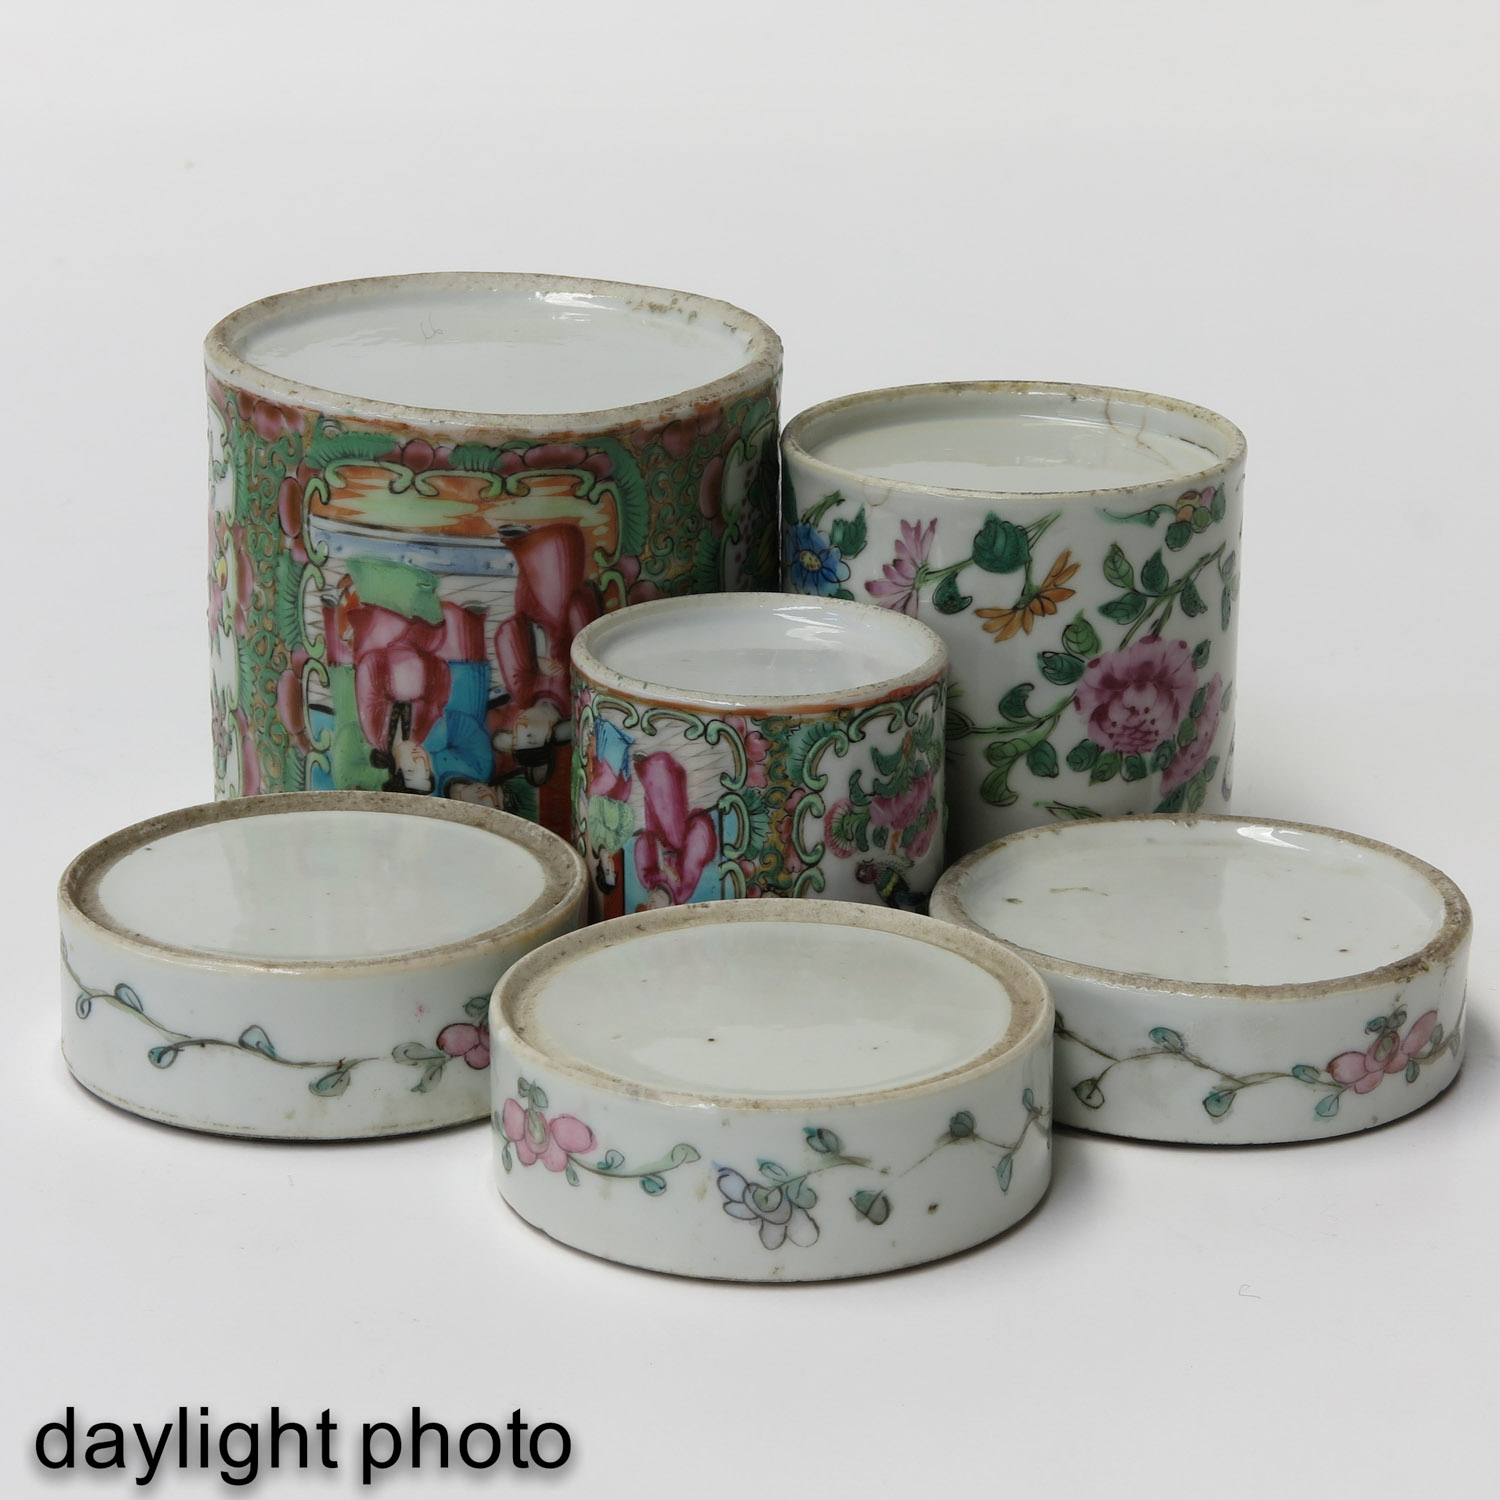 A Collection of 4 Chinese Boxes - Image 8 of 10